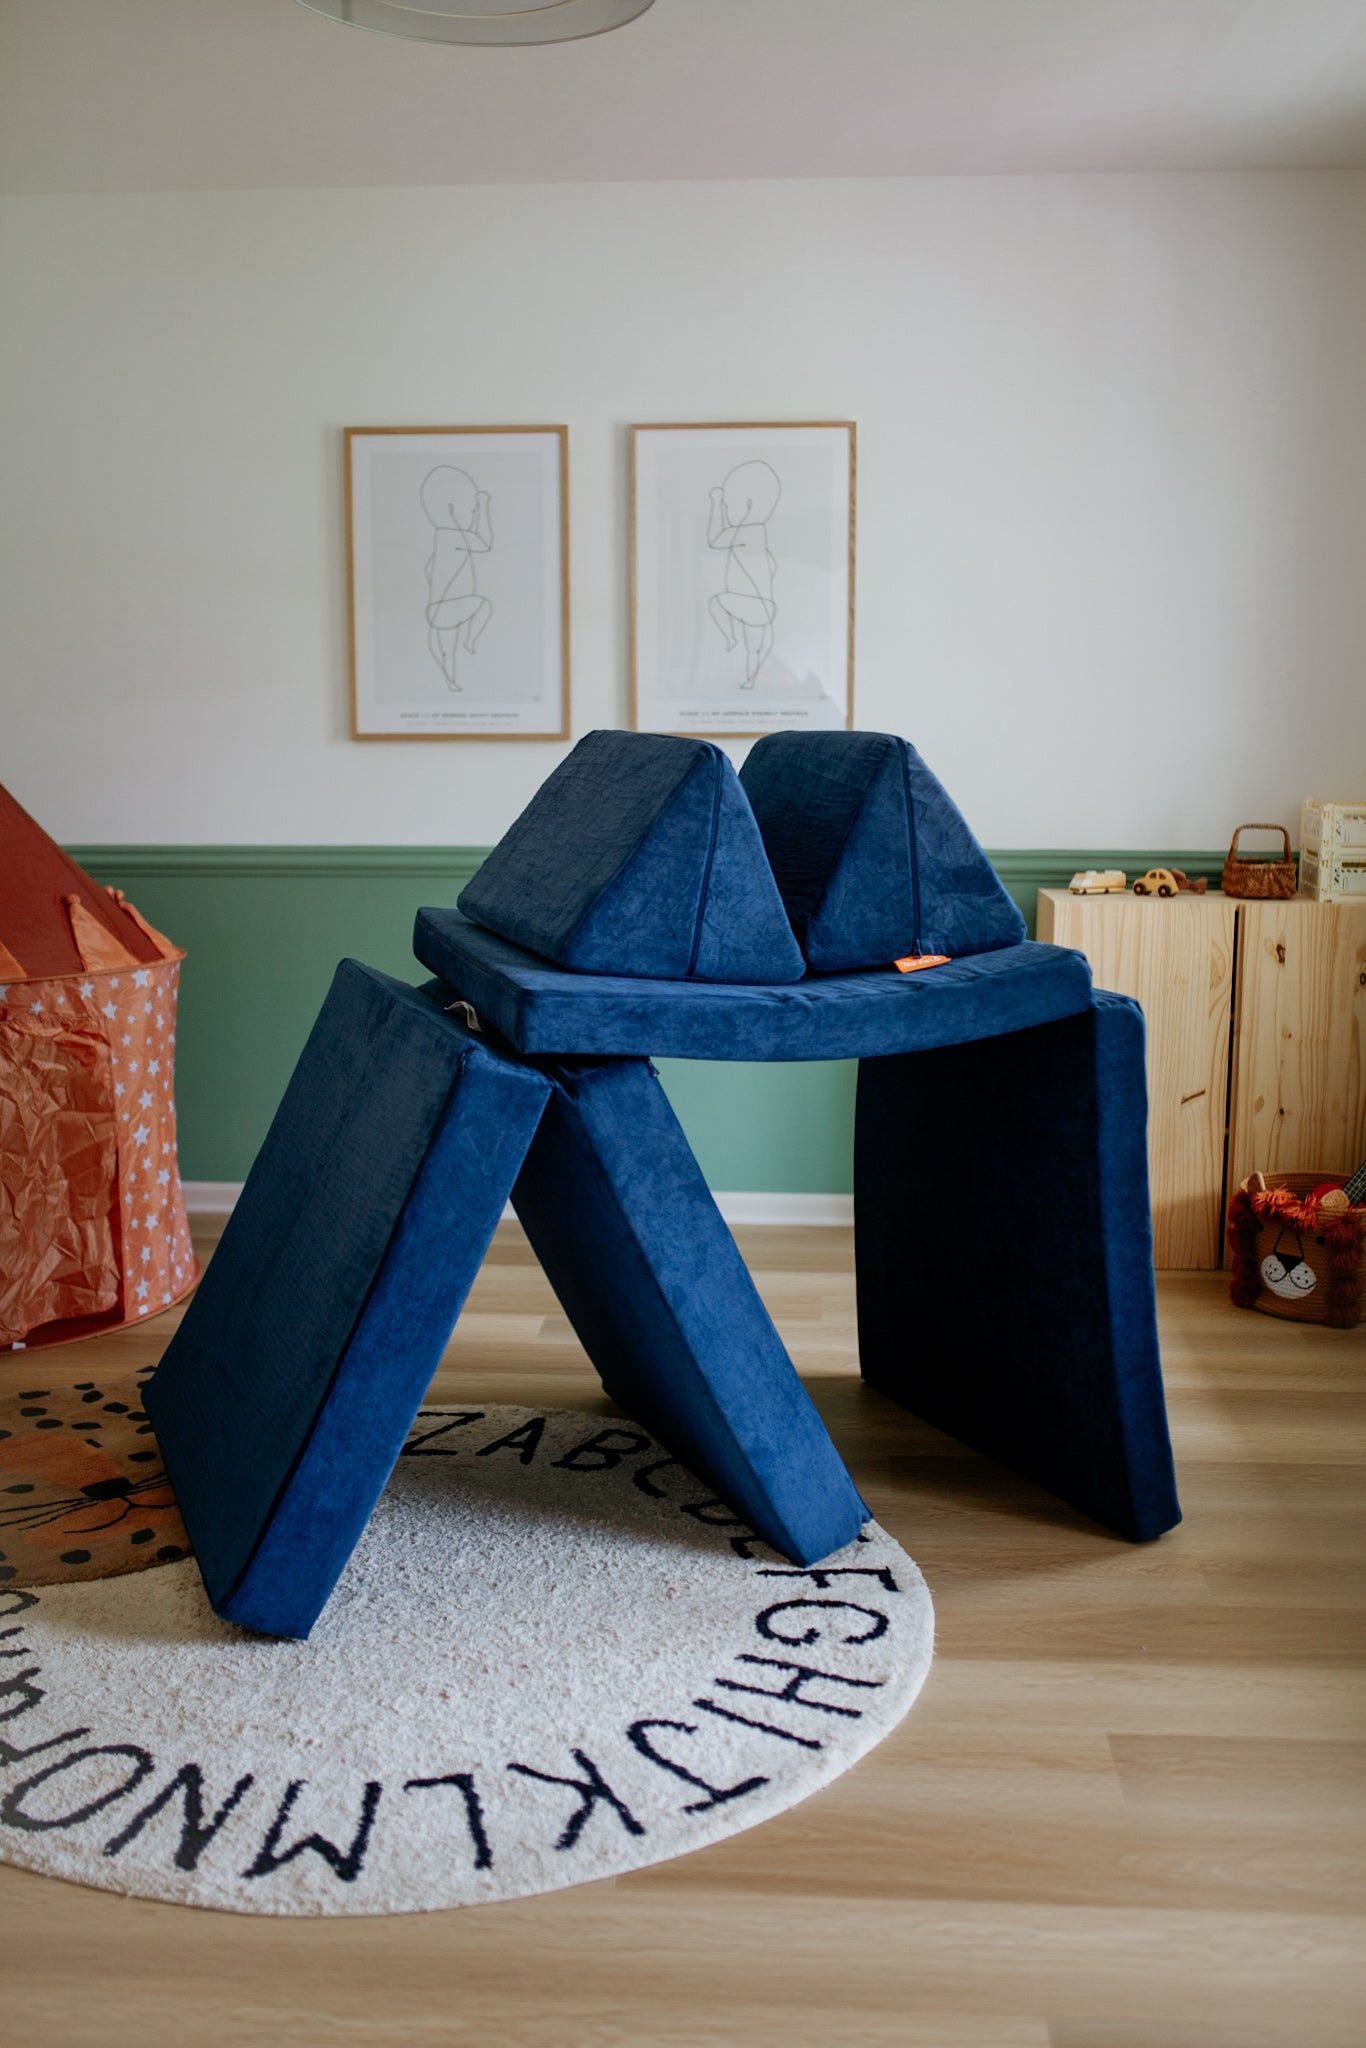 Blueridge double-brushed navy Nugget built into a kids fort